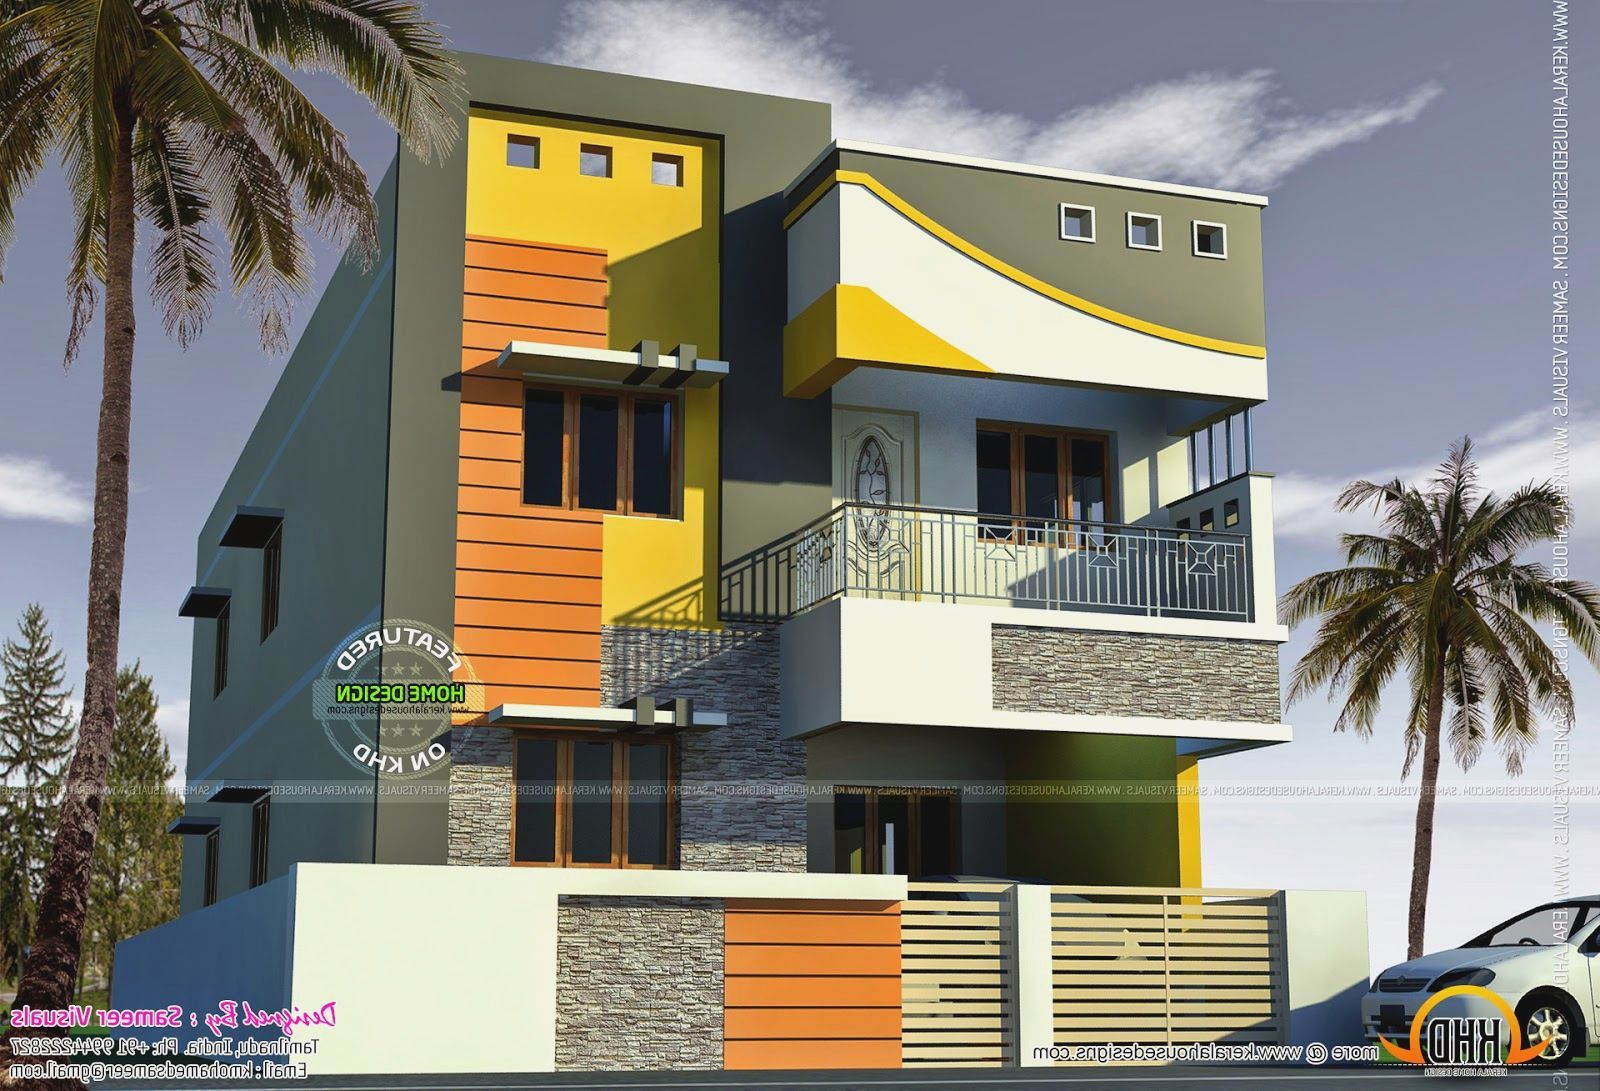 tamilnadu house models more picture tamilnadu house models pleasetamilnadu house models more picture tamilnadu house models please visit www infagar com